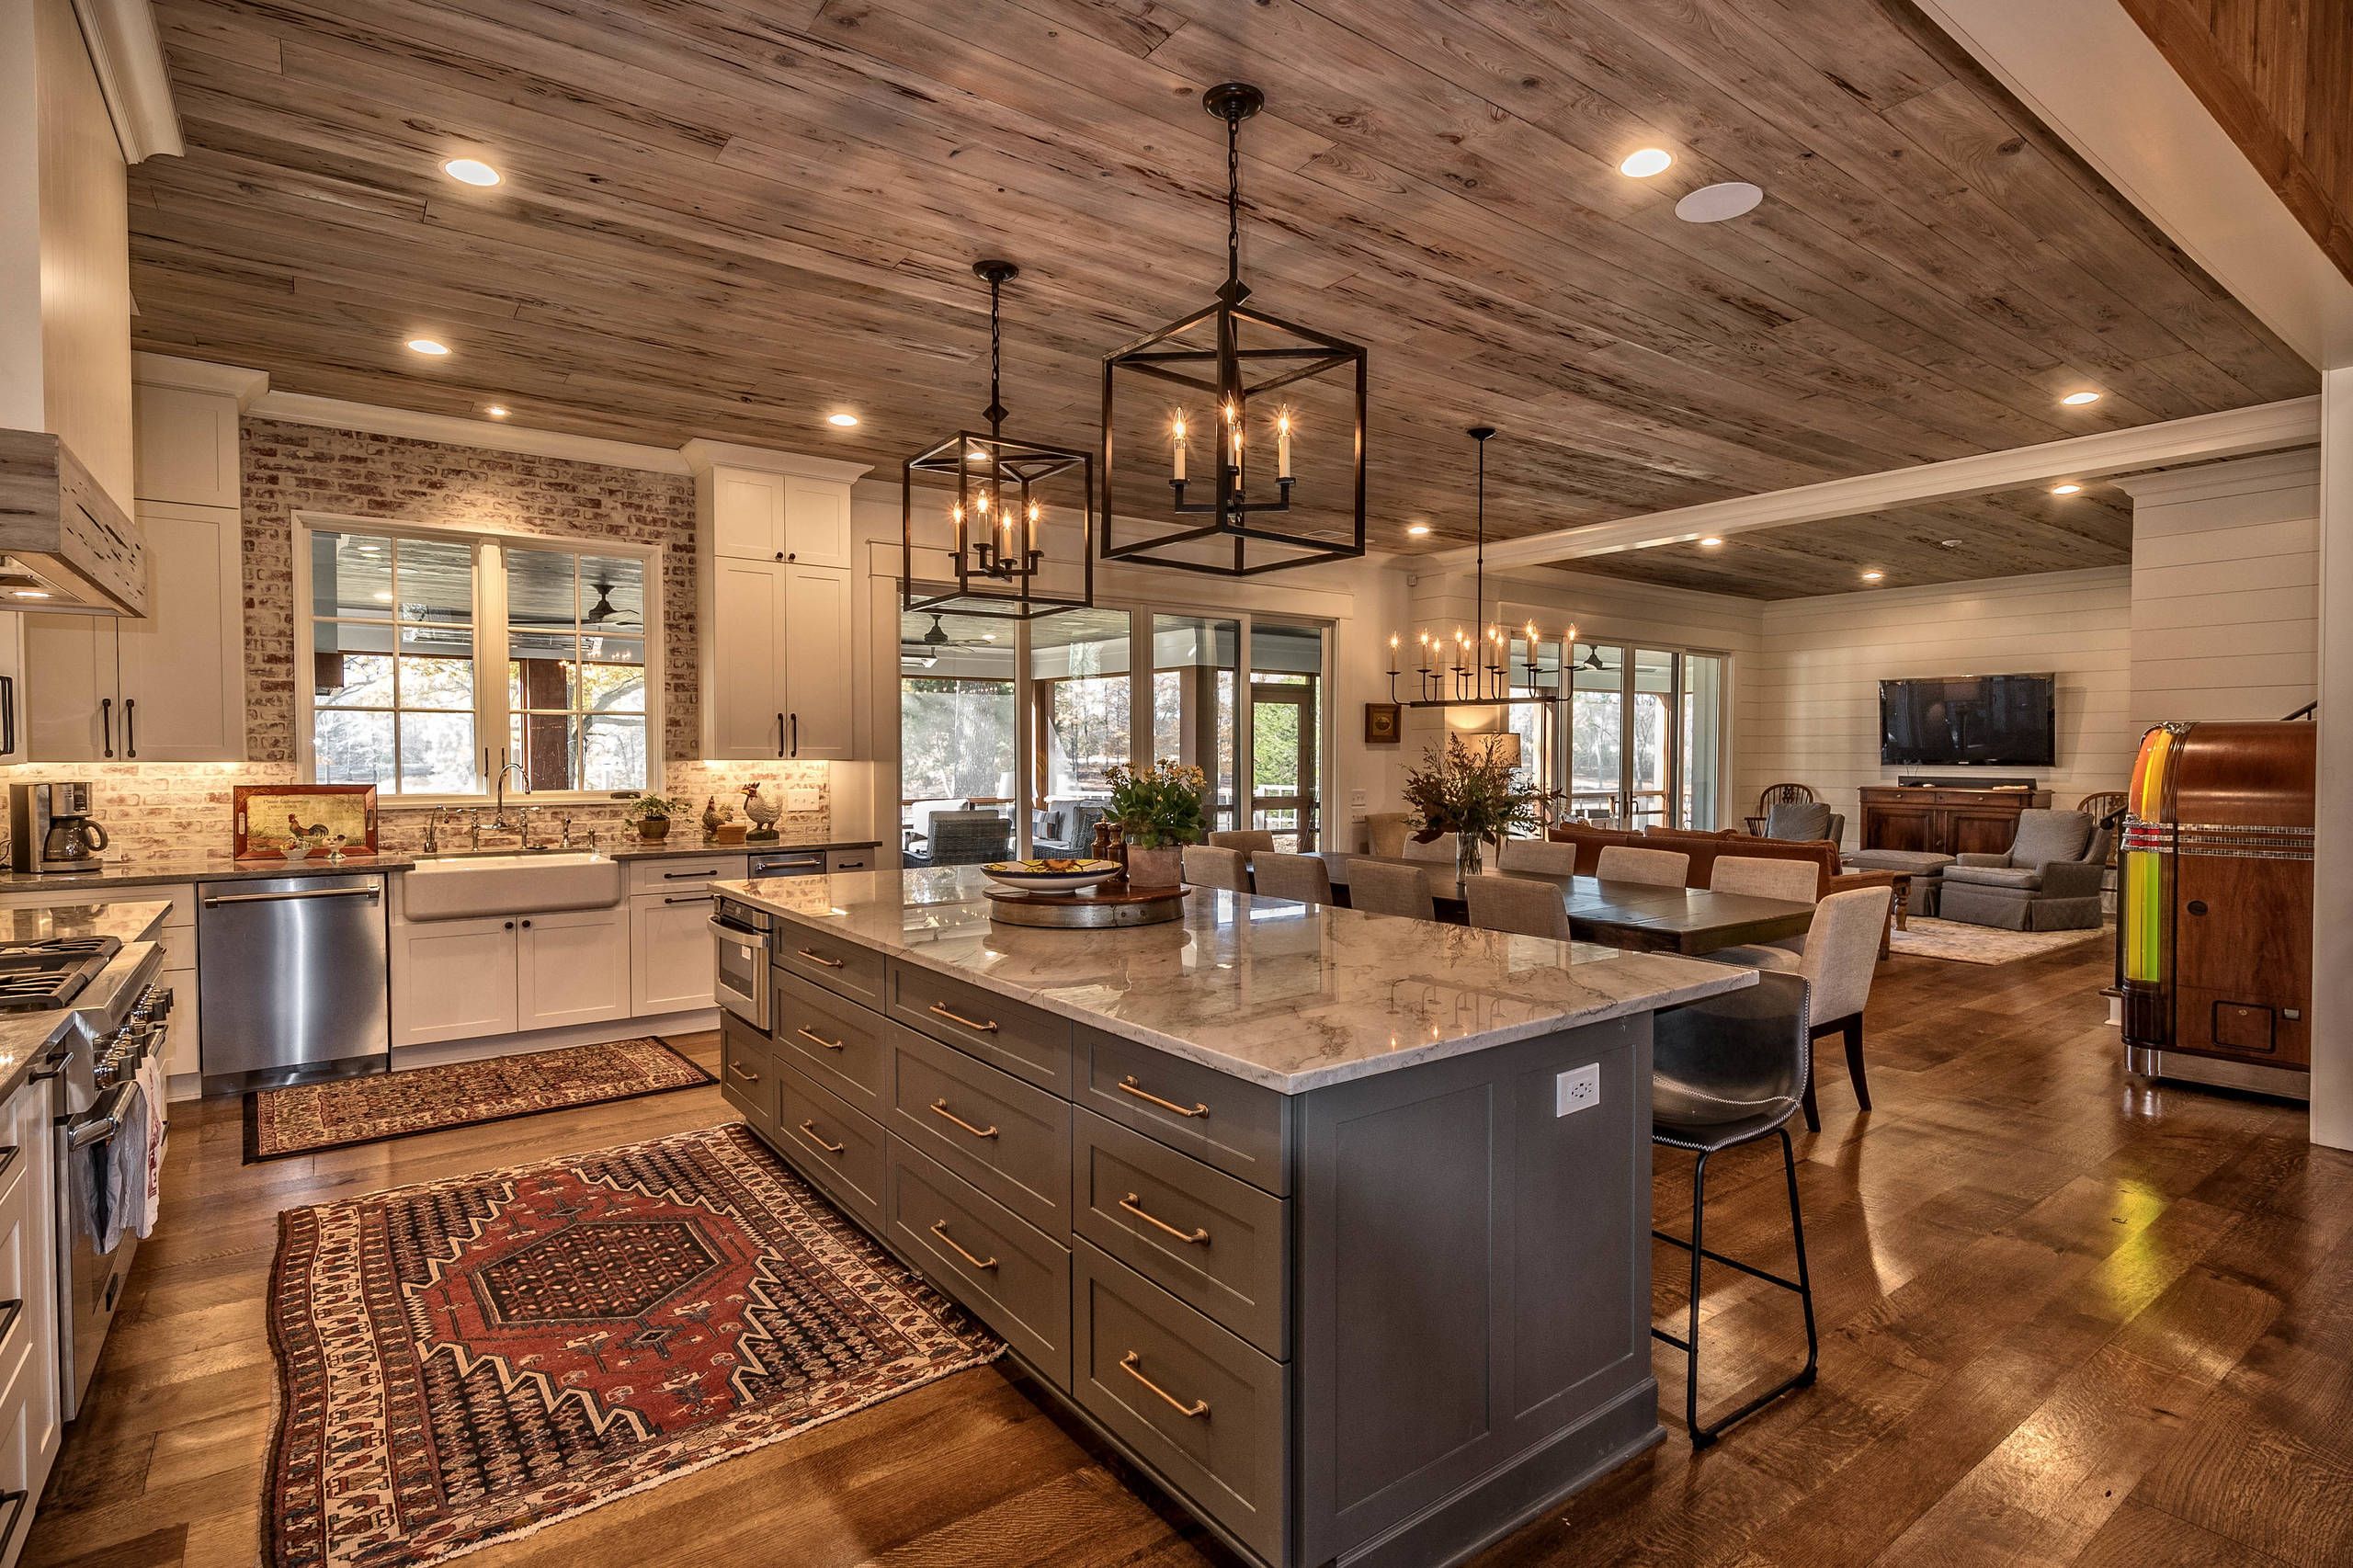 75 Beautiful Rustic Kitchen Pictures